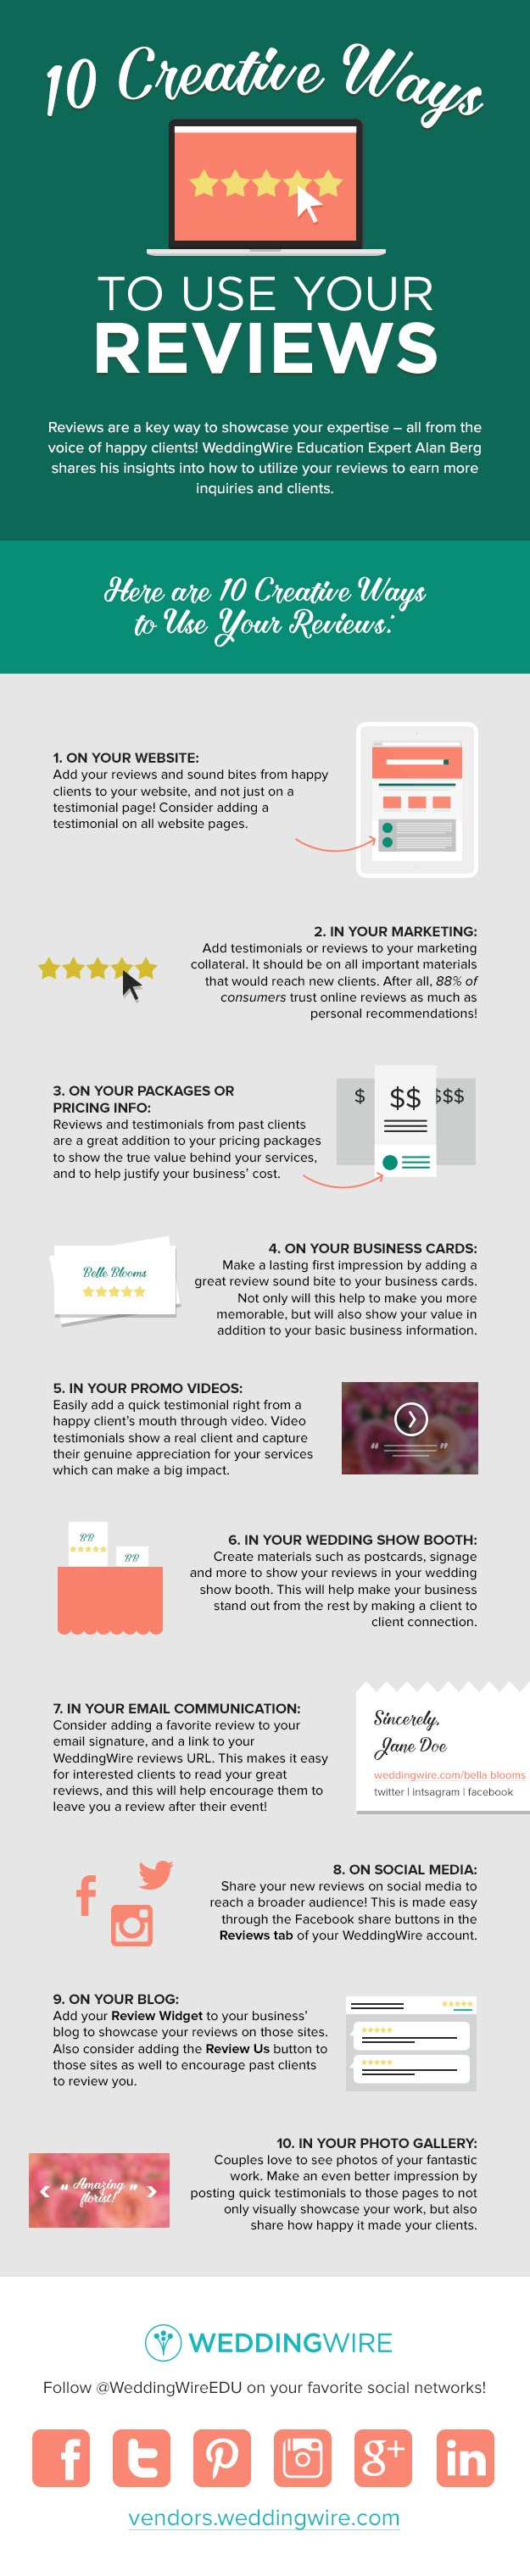 10 Creative Ways to Use Your Reviews - #infographic